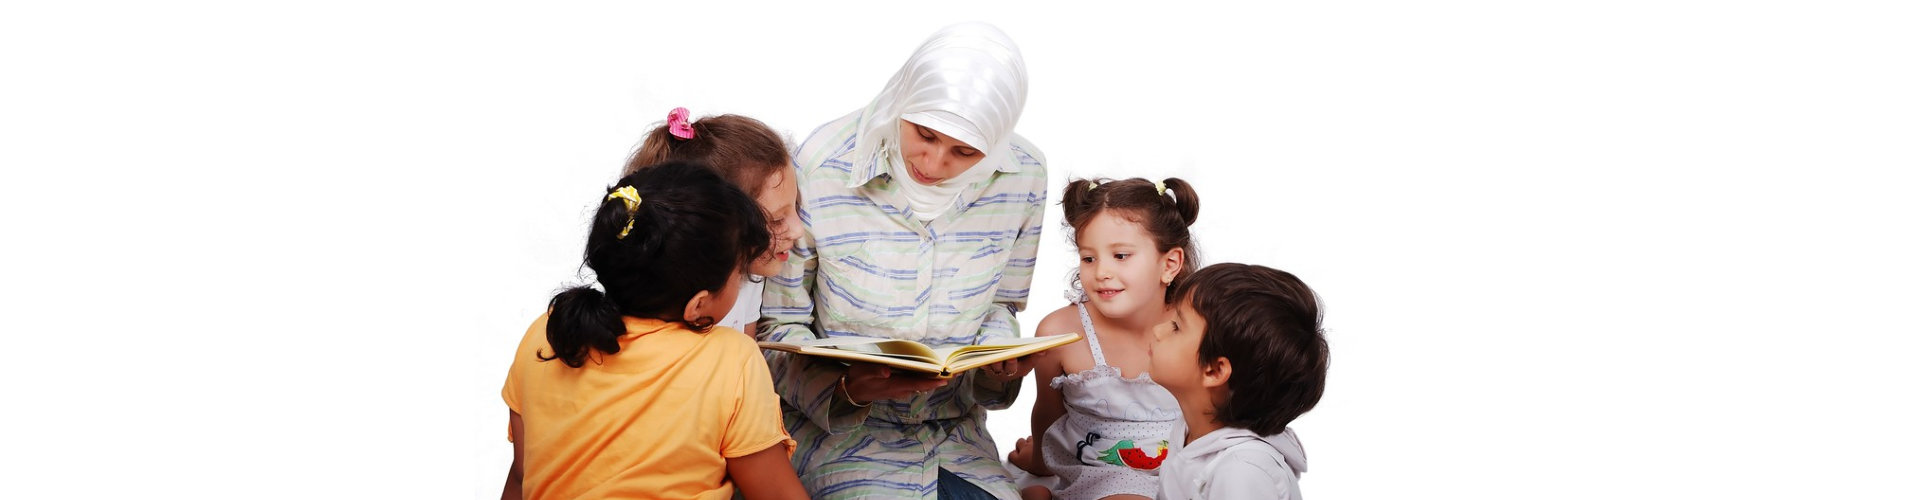 the teacher is reading while the children are listening